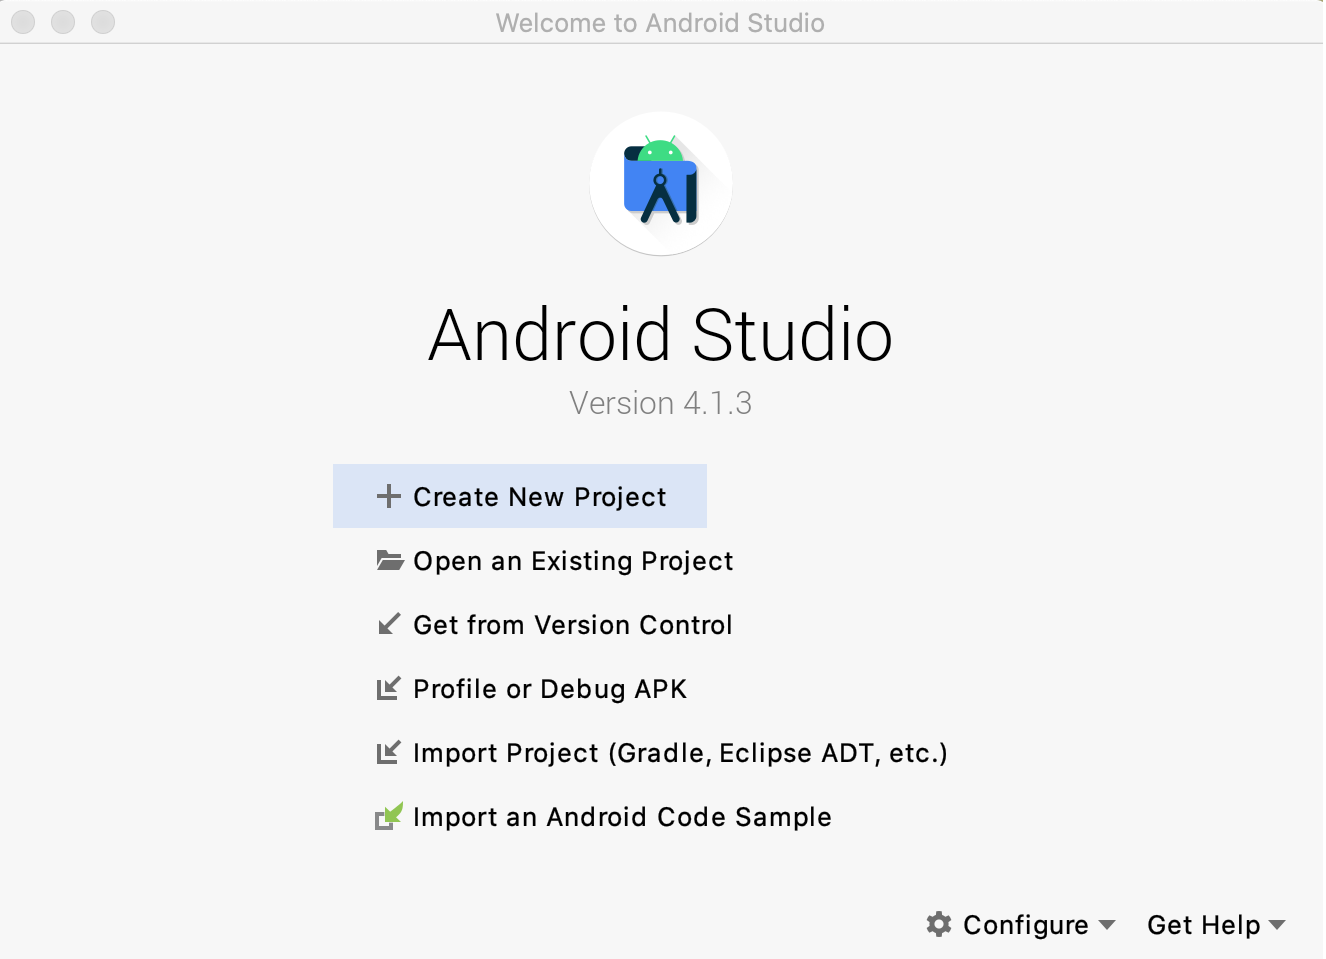 If you're on the Welcome to Android Studio screen, select **+ Create New Project**.